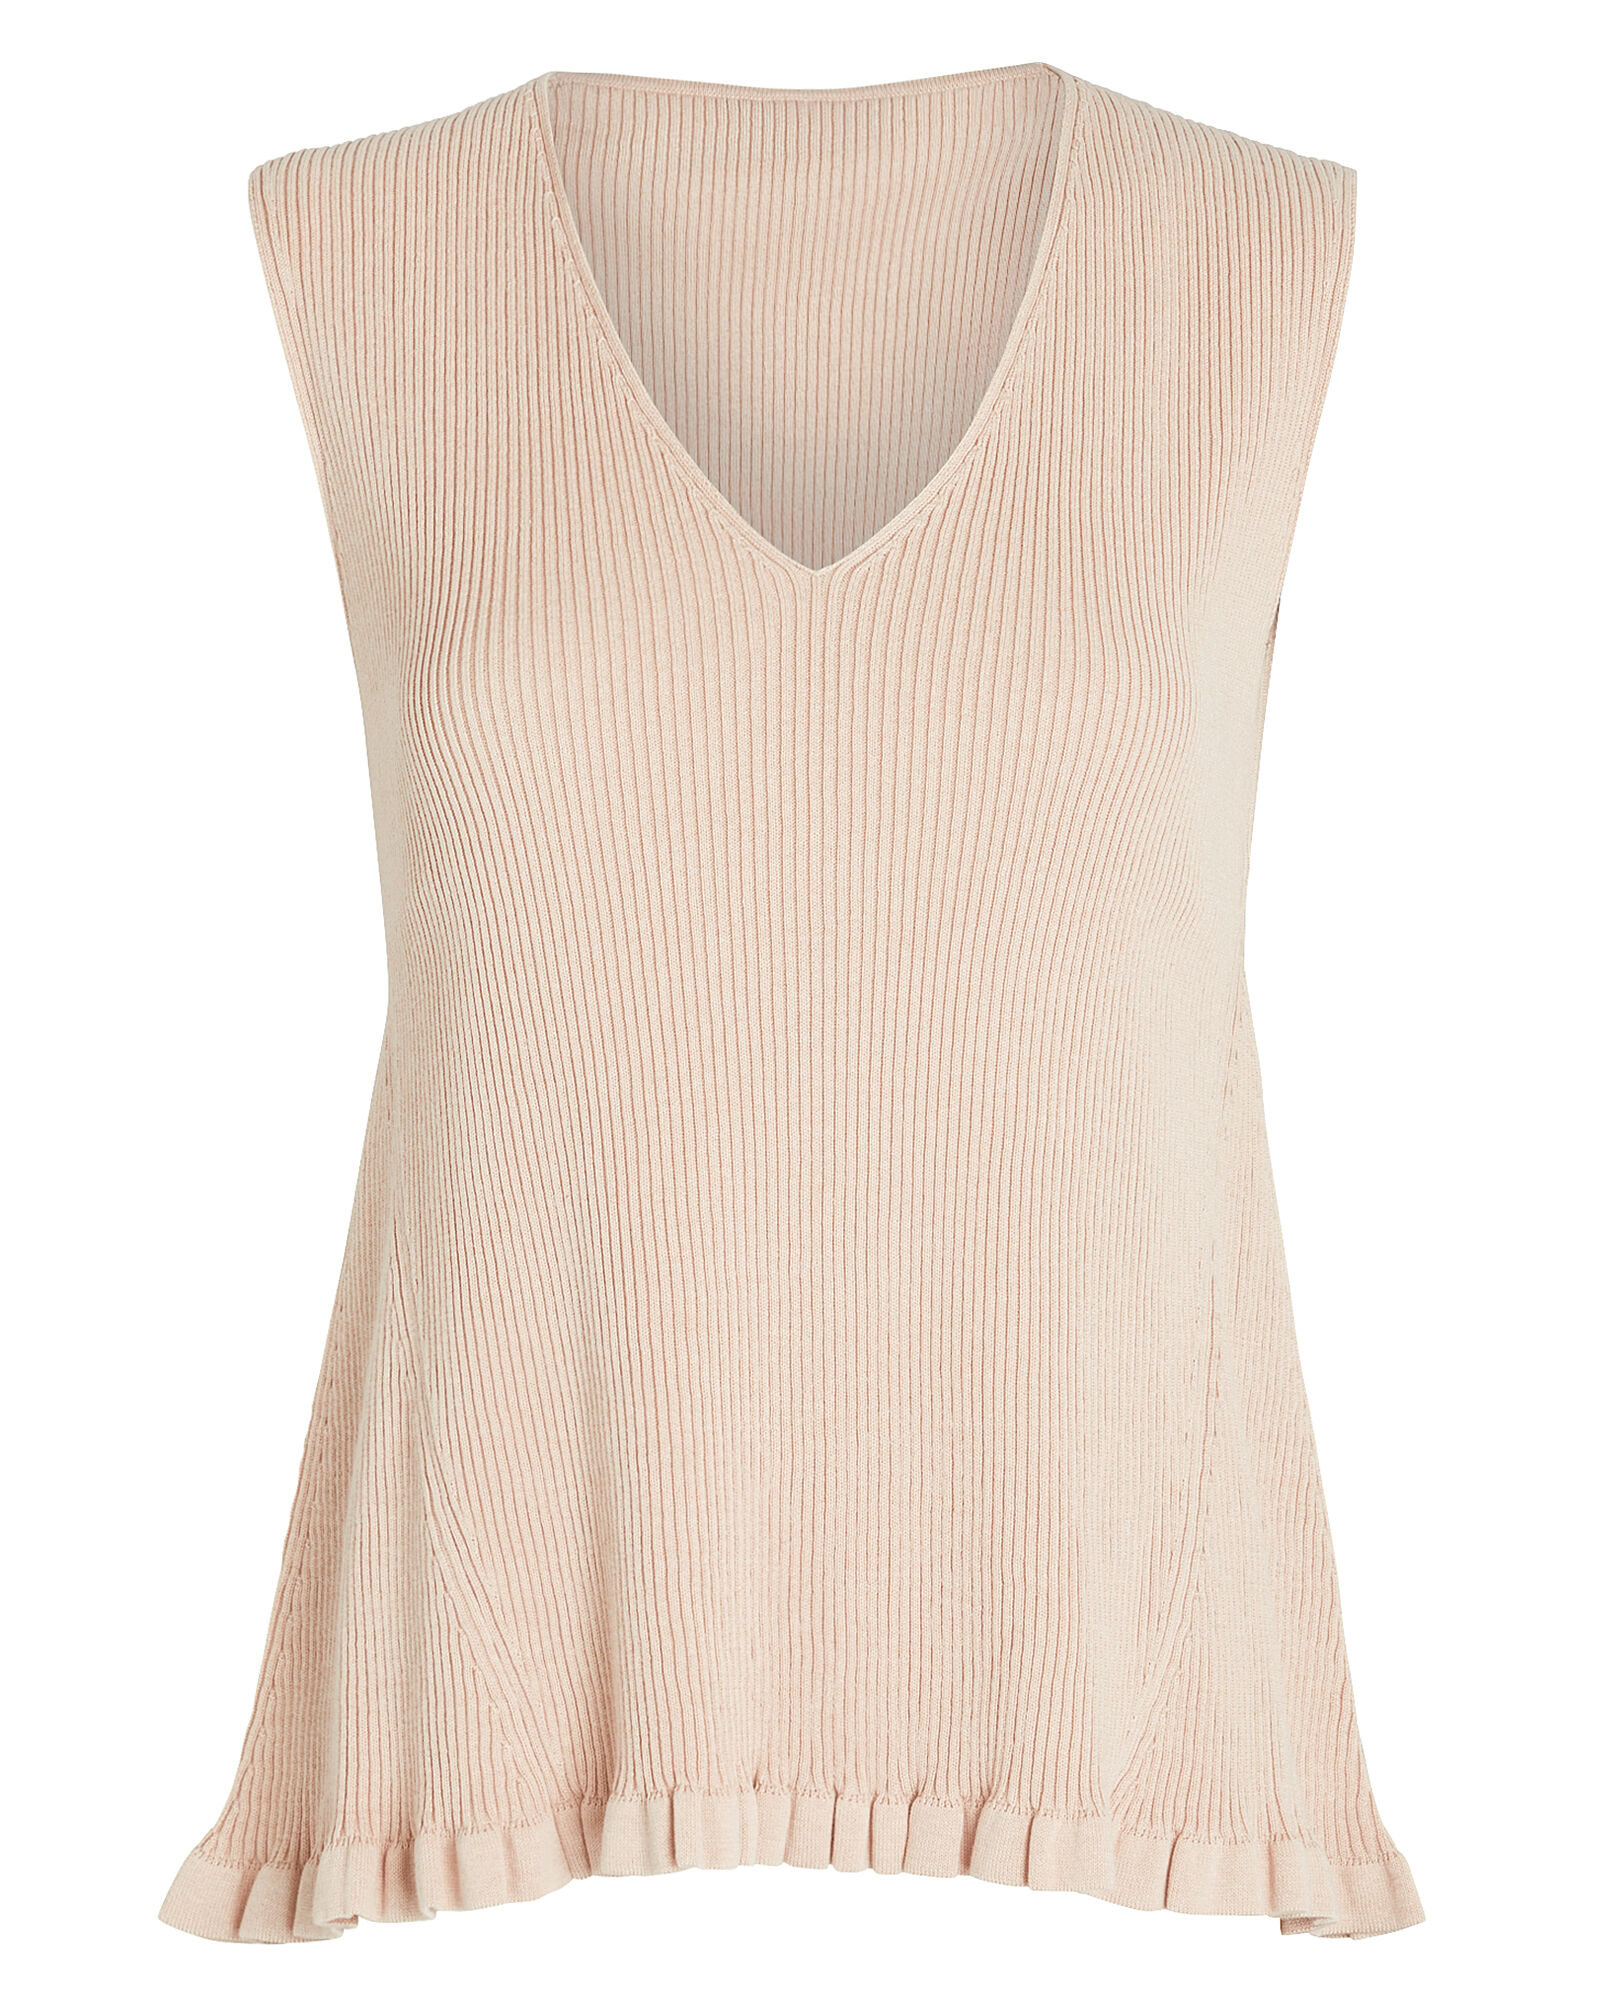 Ruffled V-Neck Knit Top, , hi-res